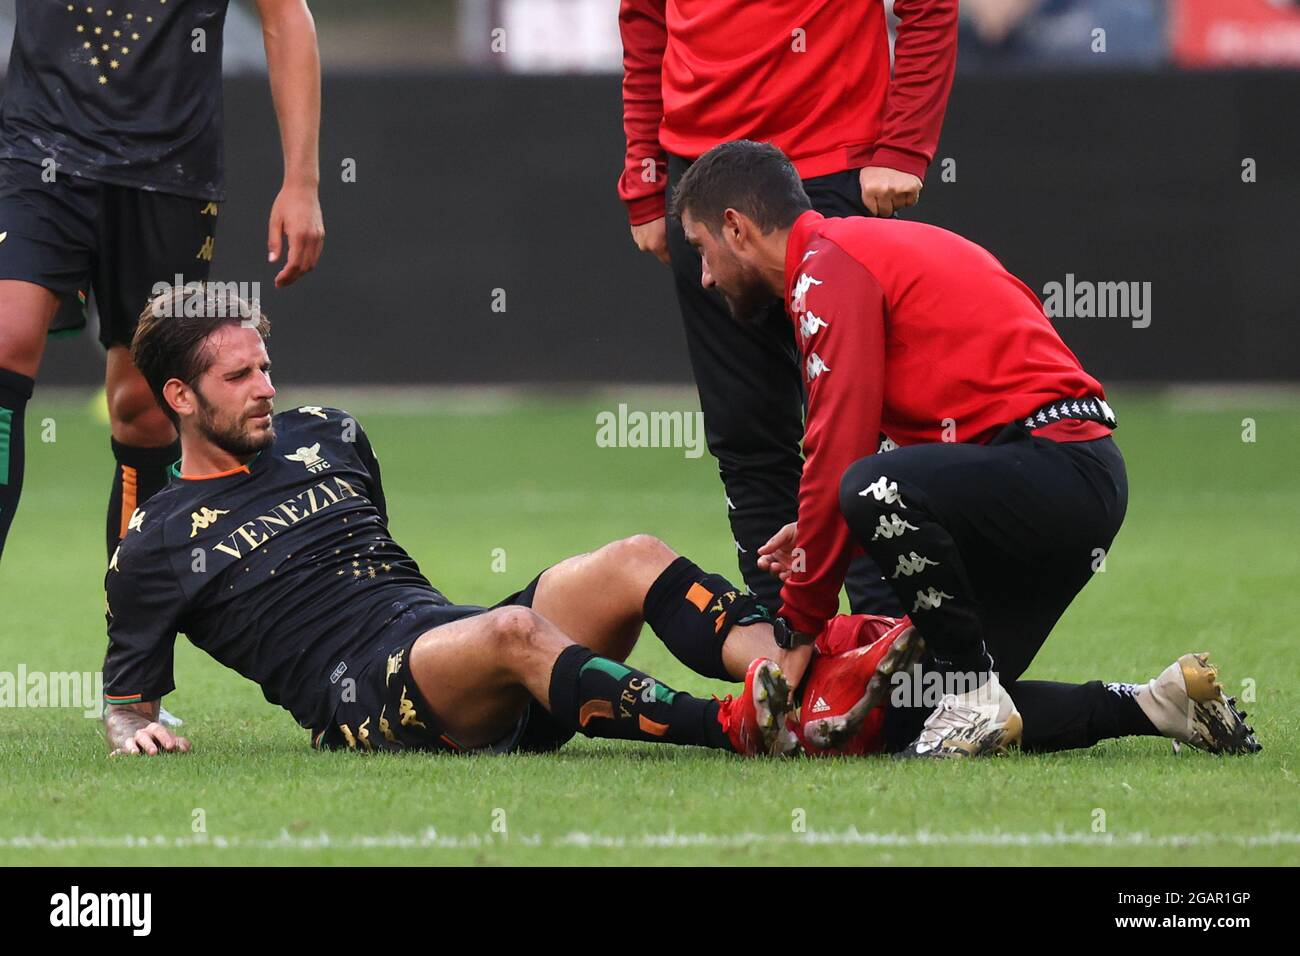 Join facebook to connect with nicole aramu and others you may know. Utrecht Netherlands July 31 Mattia Aramu Of Venezia Fc Injured During The Pre Season Friendly Match Between Fc Utrecht And Venezia Fc At The Galgenwaard Stadion On July 31 2021 In